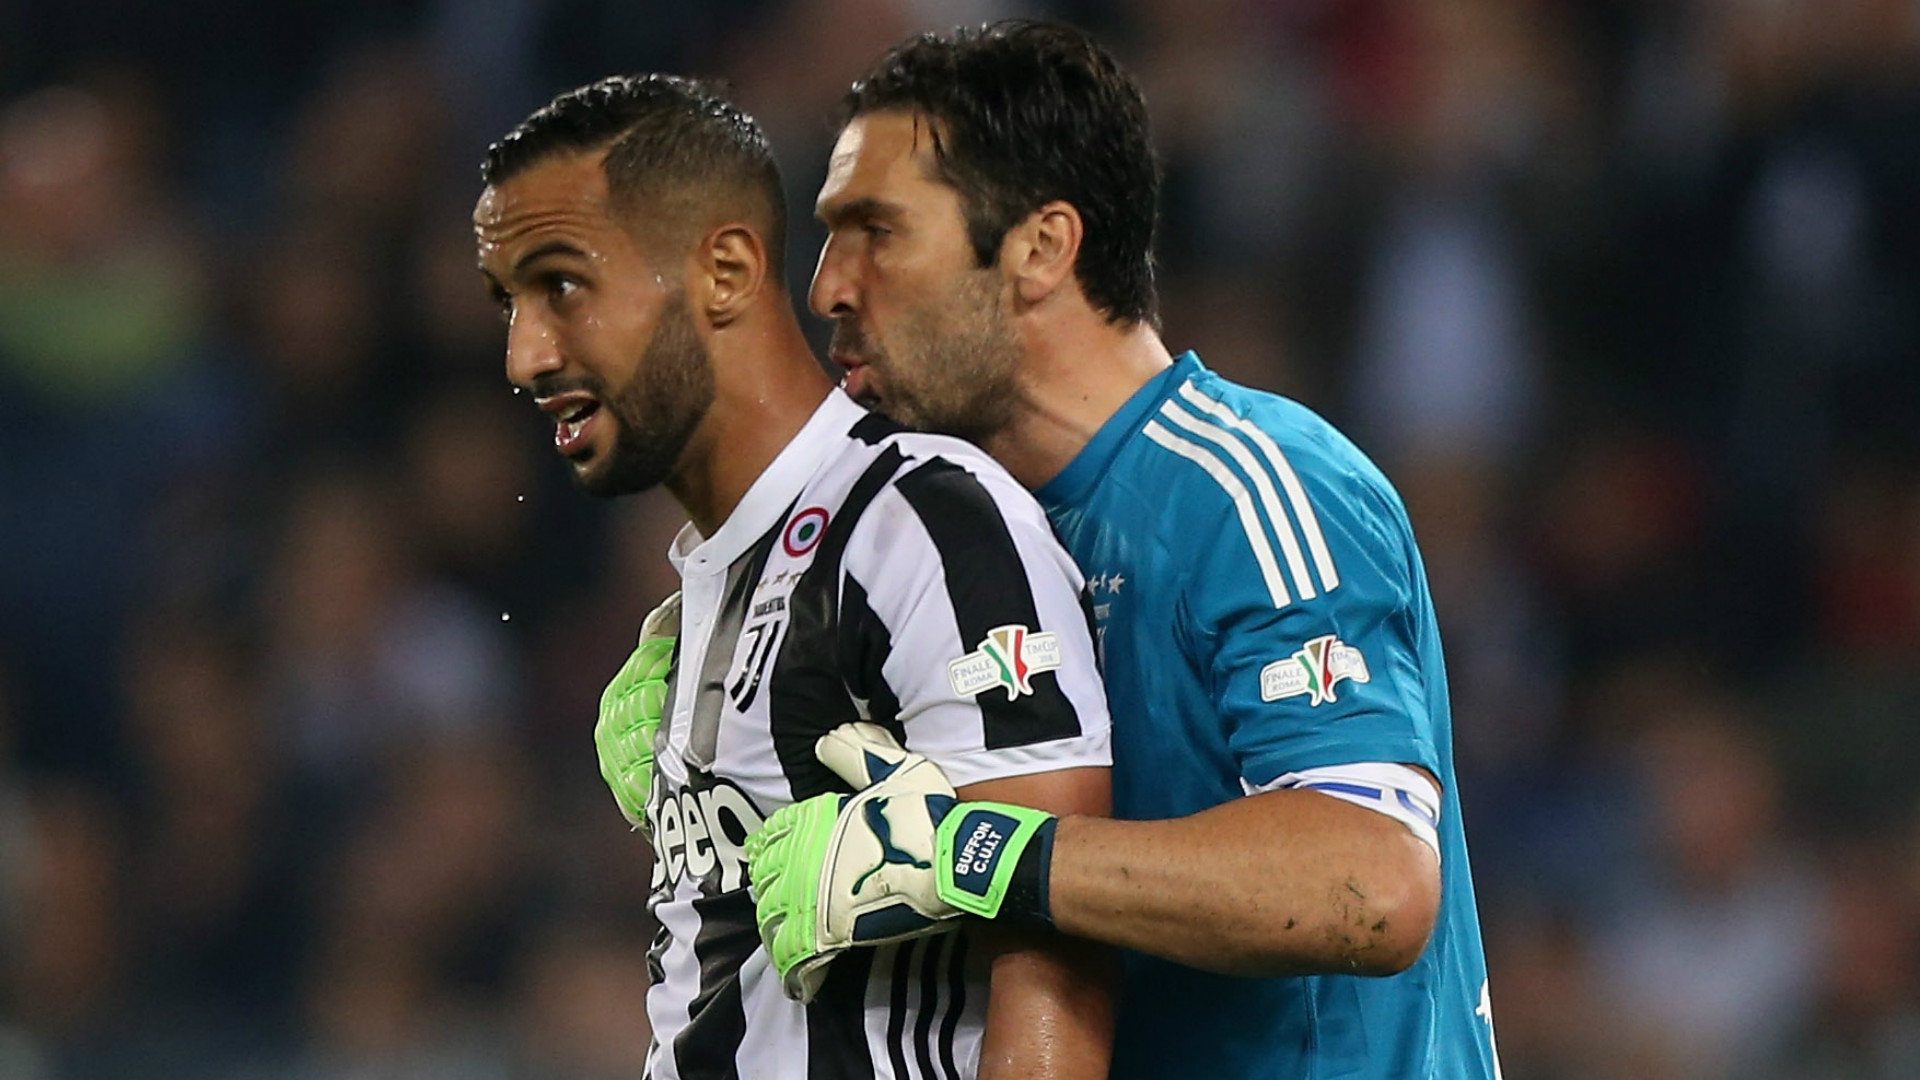 Juventus' Medhi Benatia pays tribute to departing Gianluigi Buffon